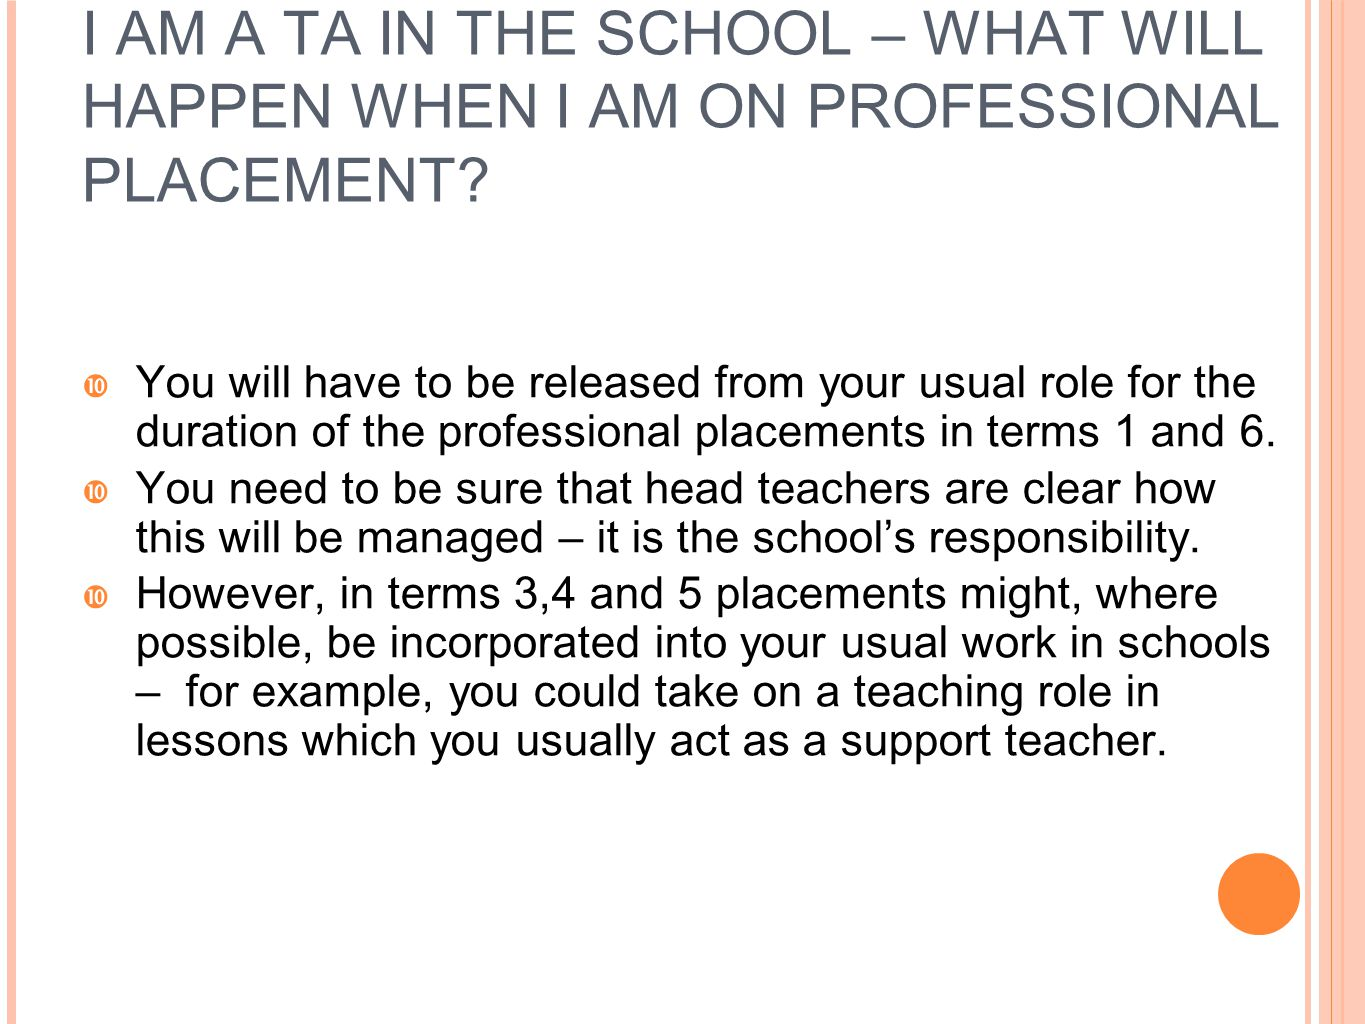 I AM A TA IN THE SCHOOL – WHAT WILL HAPPEN WHEN I AM ON PROFESSIONAL PLACEMENT